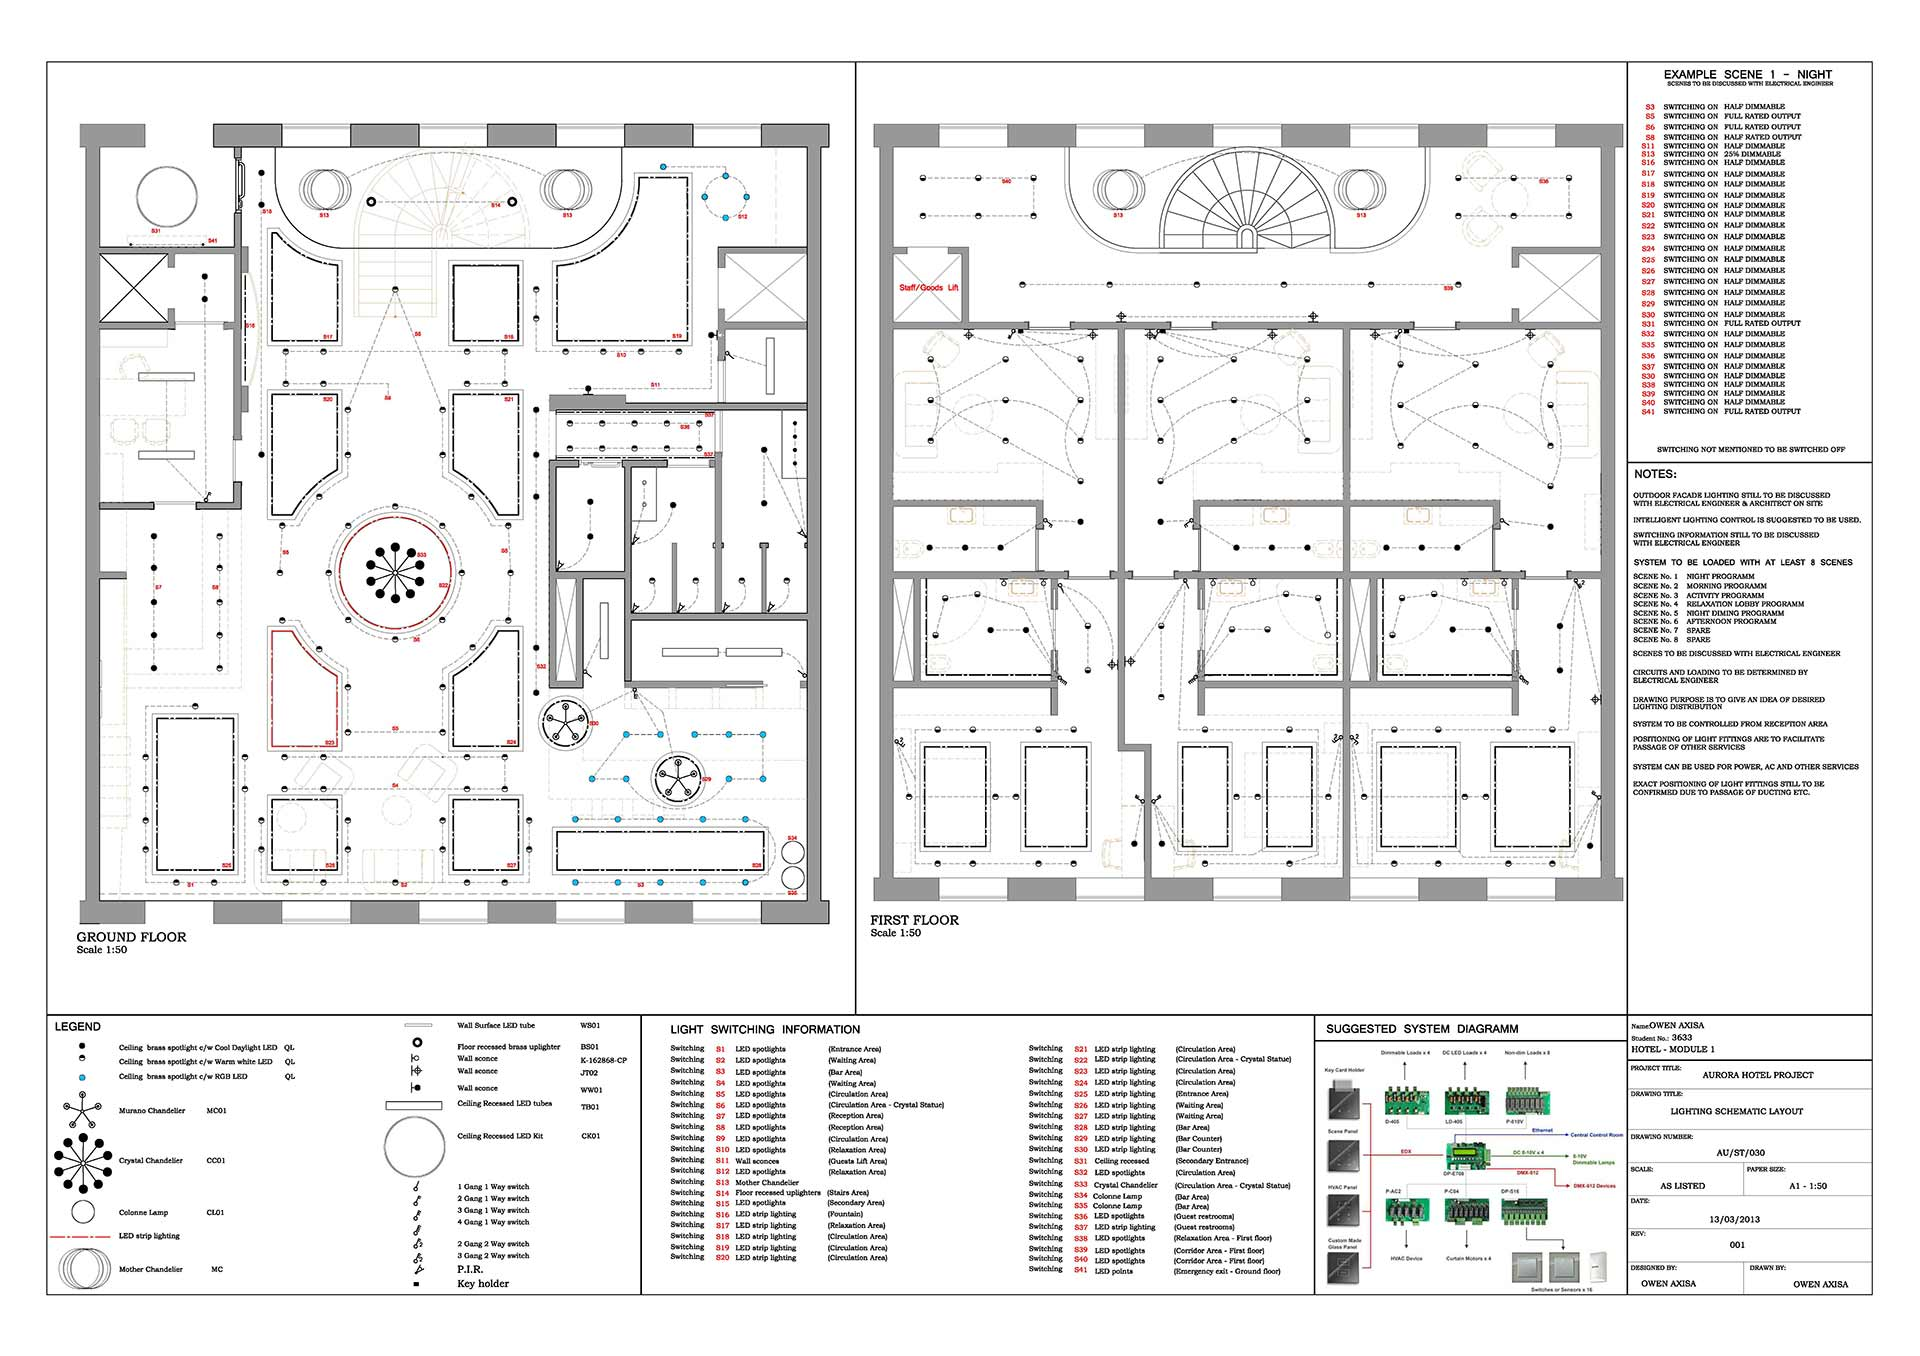 ba hons interior design technical drawing